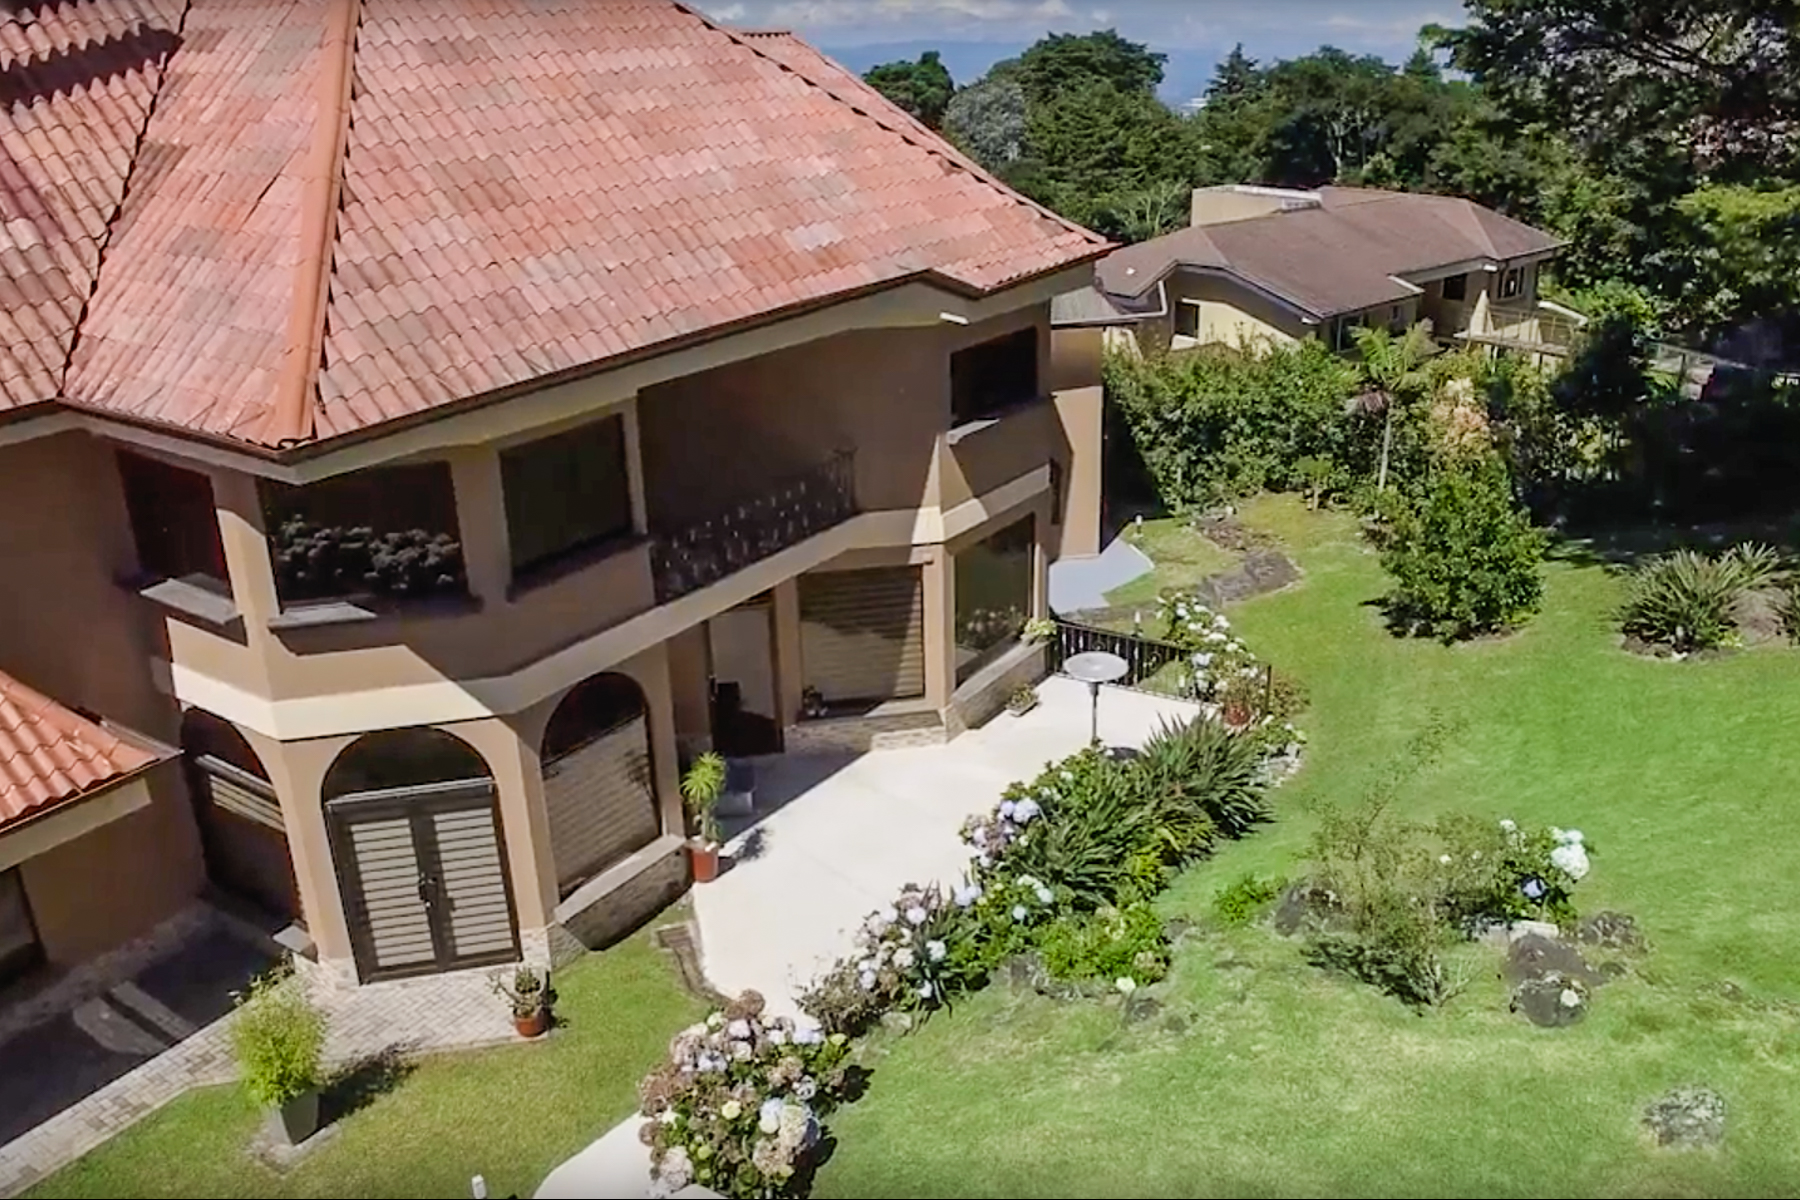 Single Family Homes for Sale at Montaña Paraiso San Rafael, Heredia Costa Rica